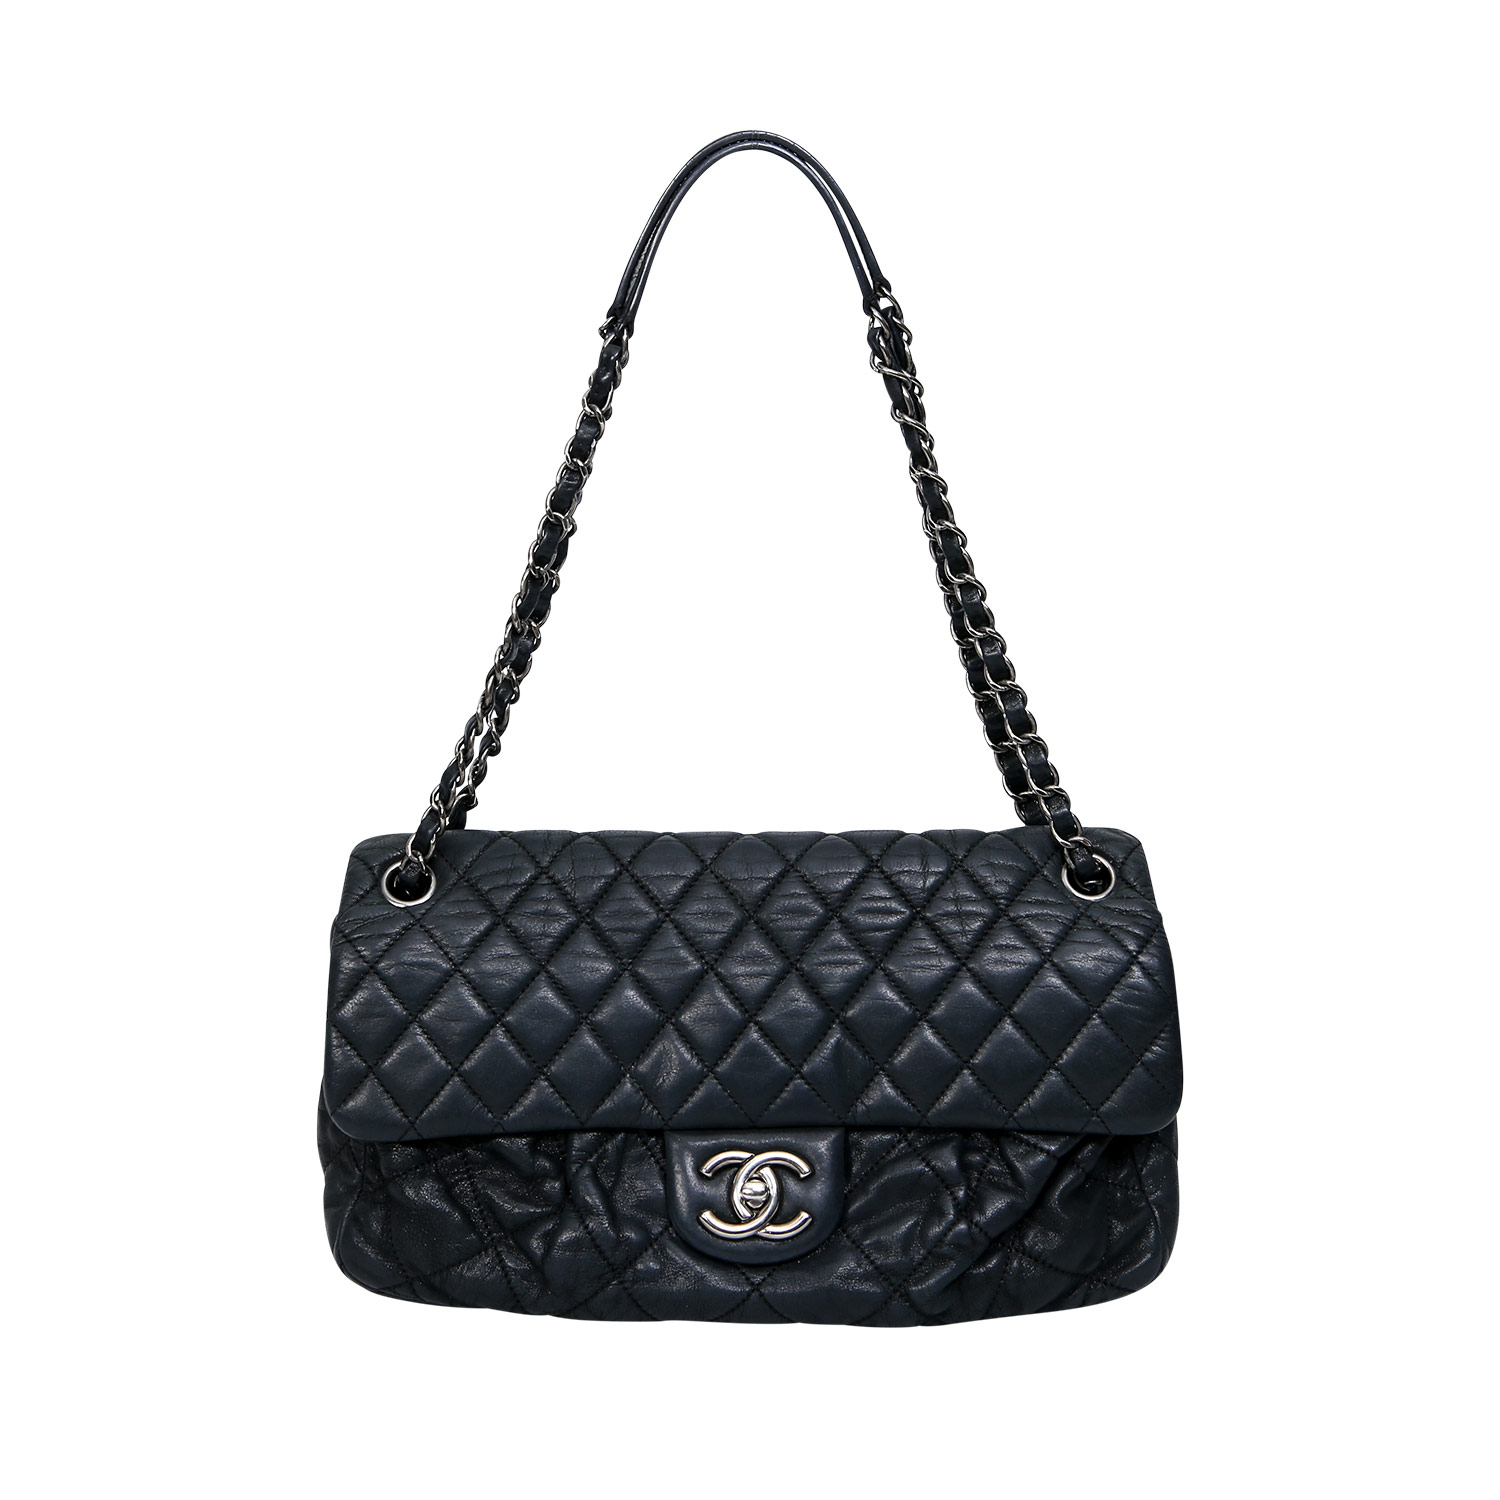 "CHANEL Schultertasche ""SINGLE FLAP"""